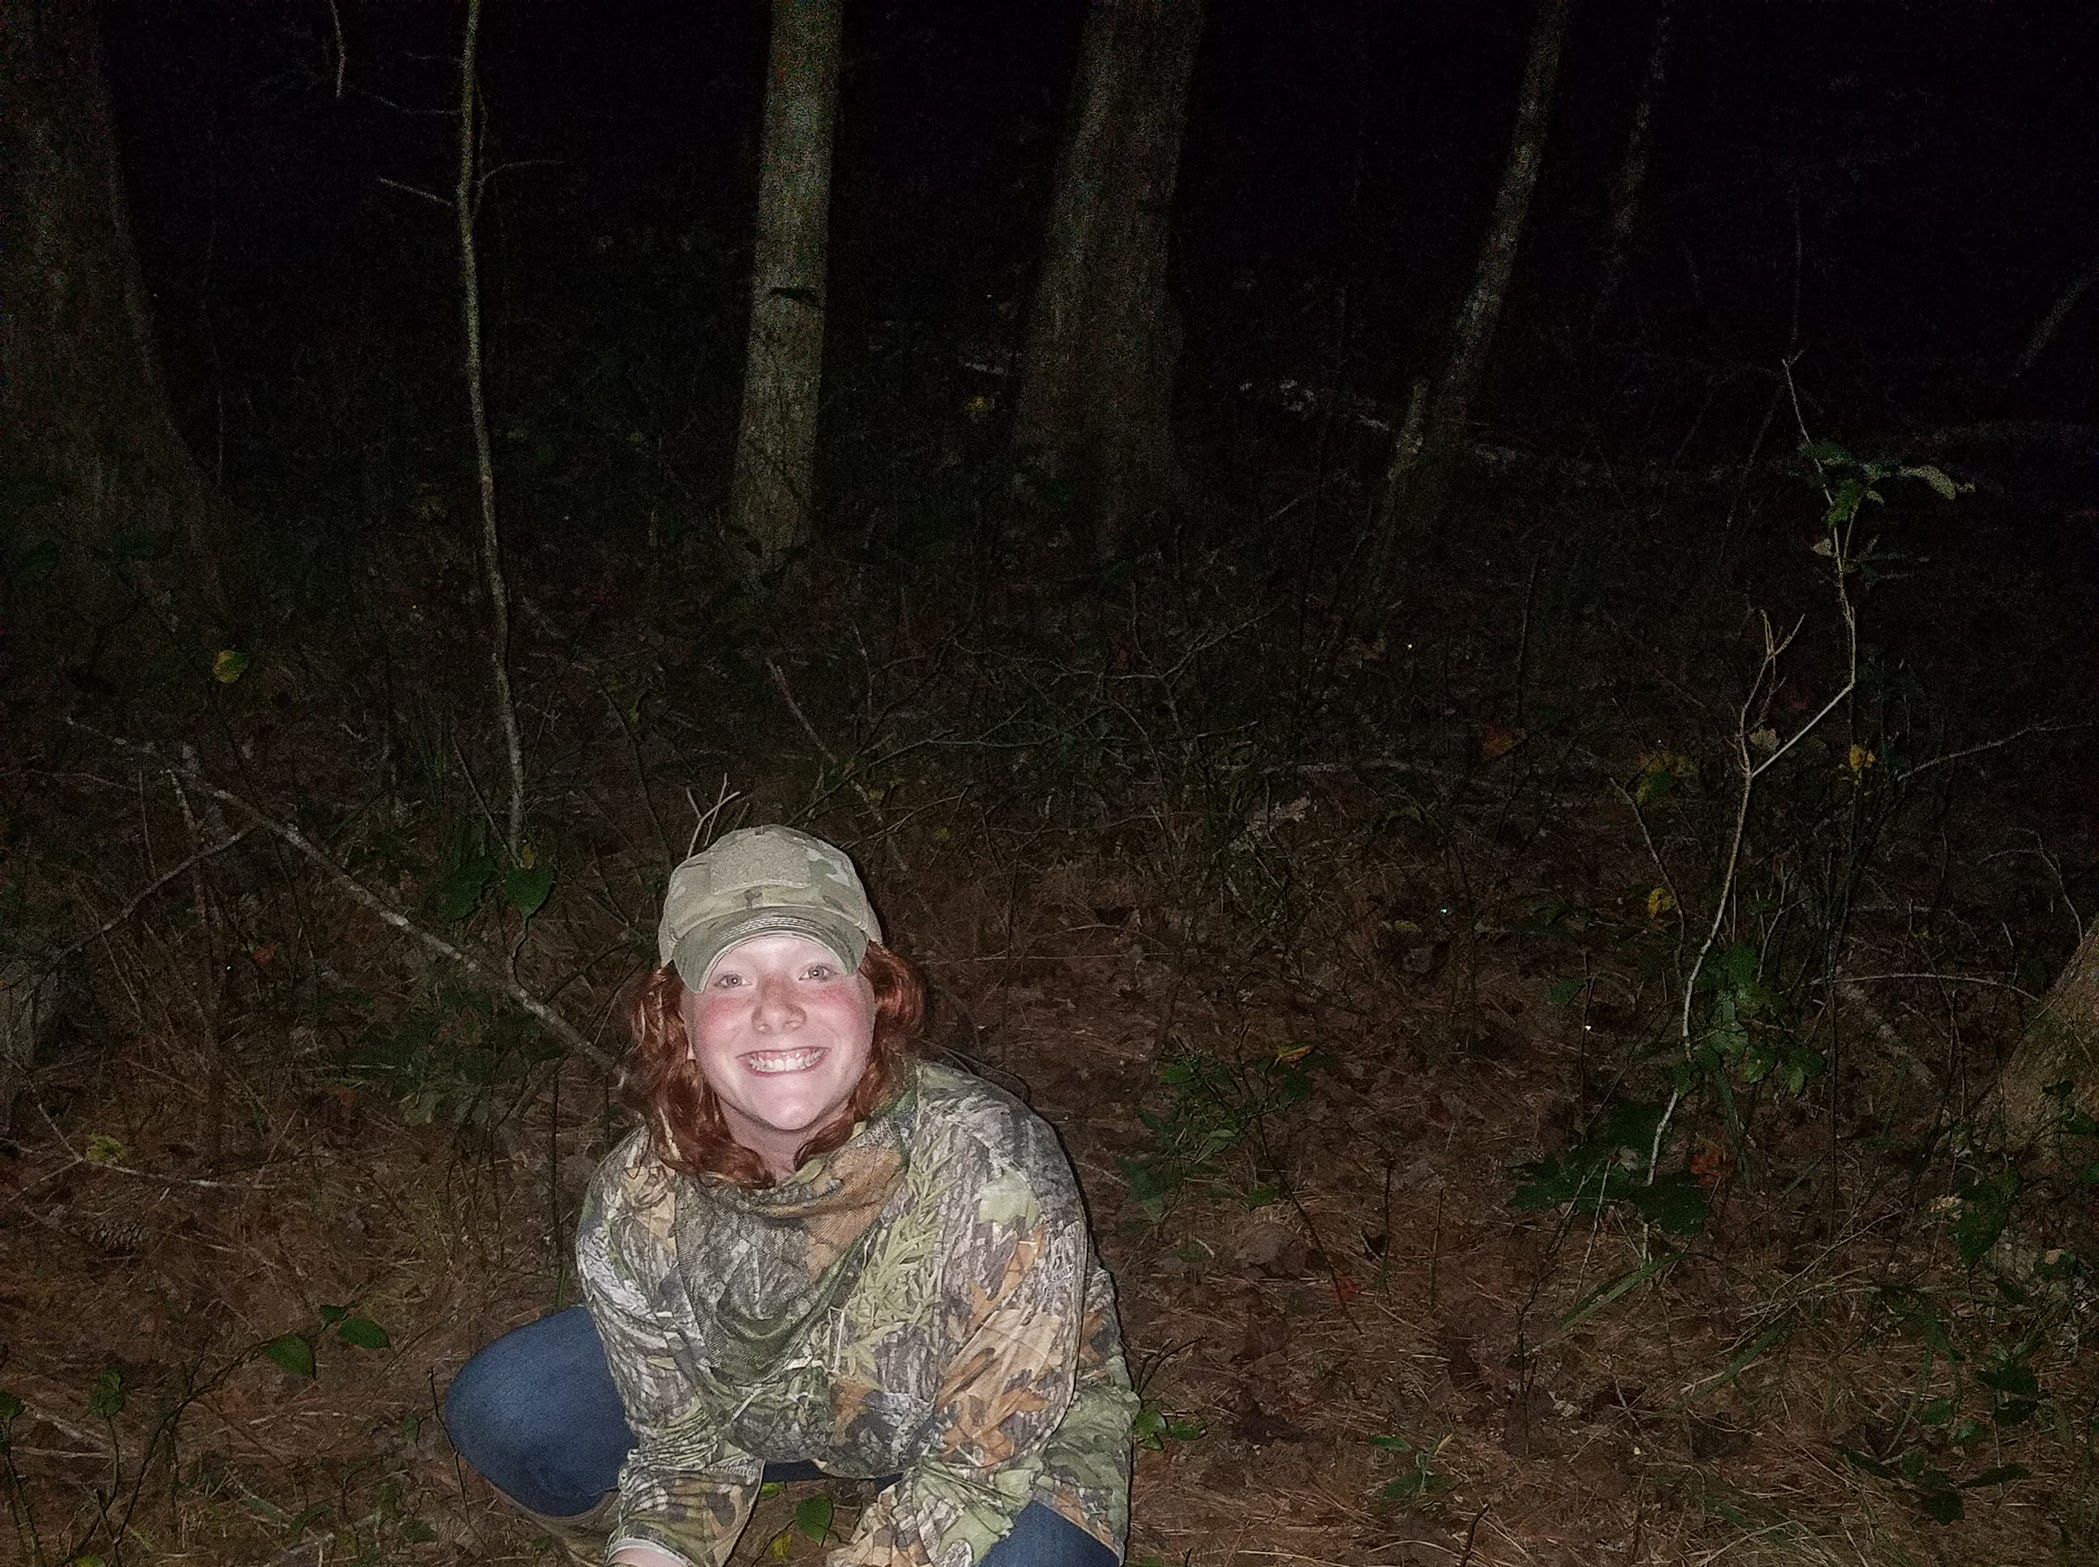 Rylee Brooke Langford, 14, of Amory, harvested a doe during the opening week of archery season. It was her first archery harvest and she shot it from a ground blind.